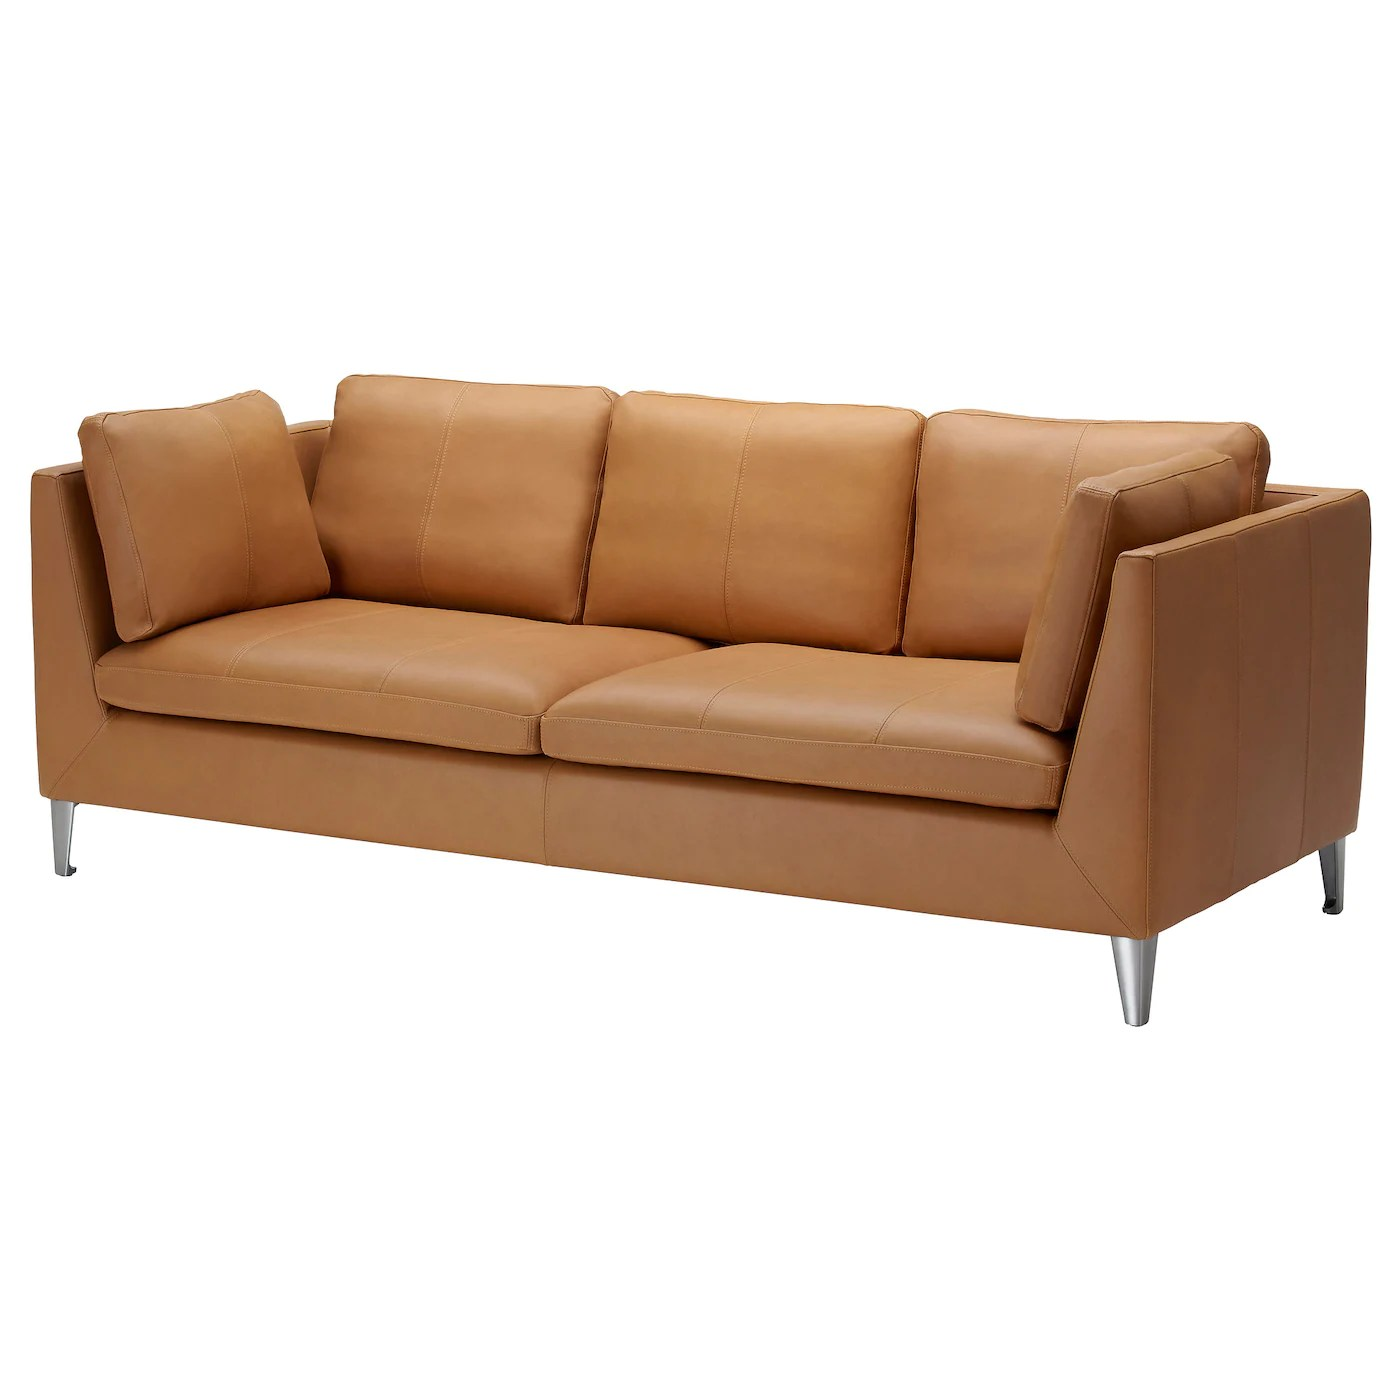 ikea sater sofa uk narrow table leather coated fabric sofas stockholm three seat 25 year guarantee read about the terms in